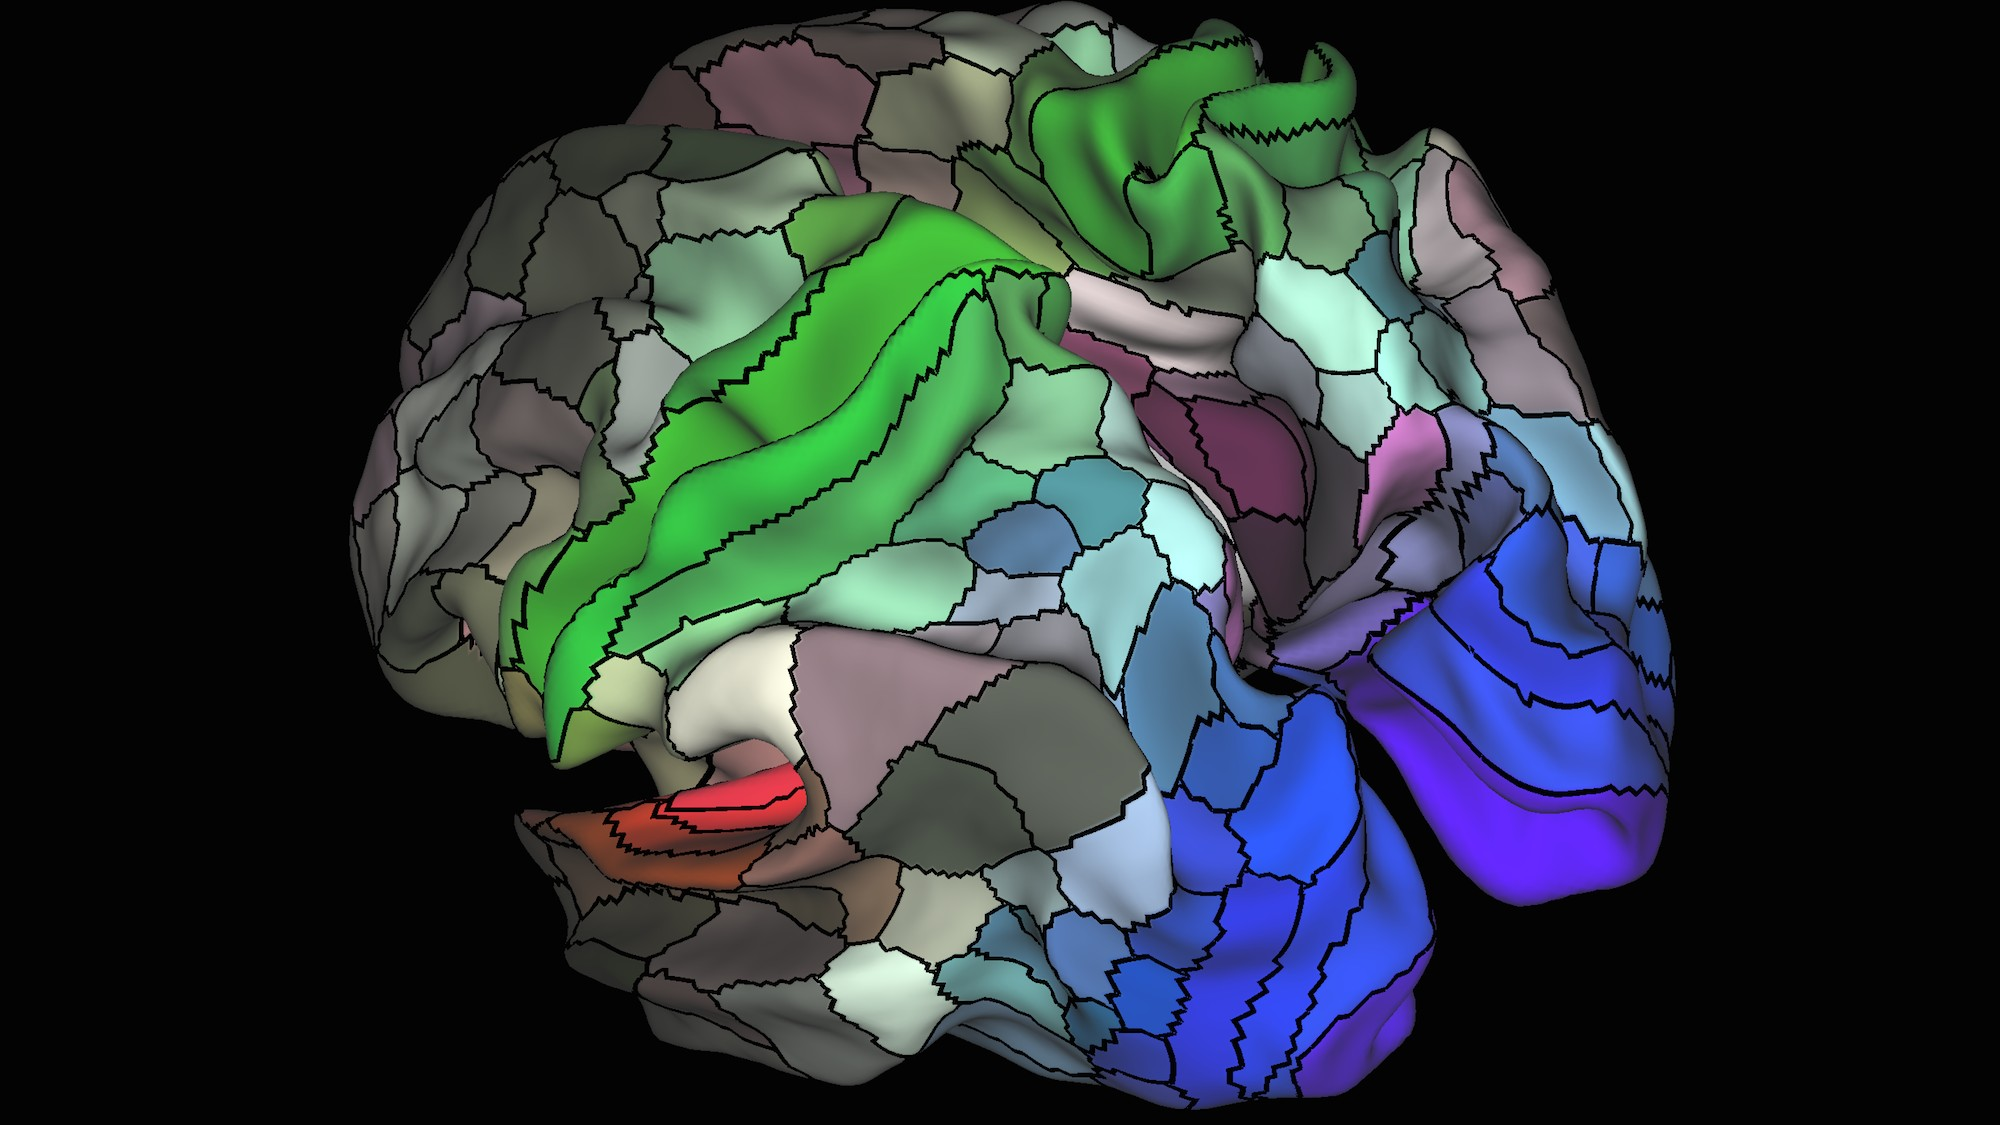 Scientists Made a New Map of the Human Brain